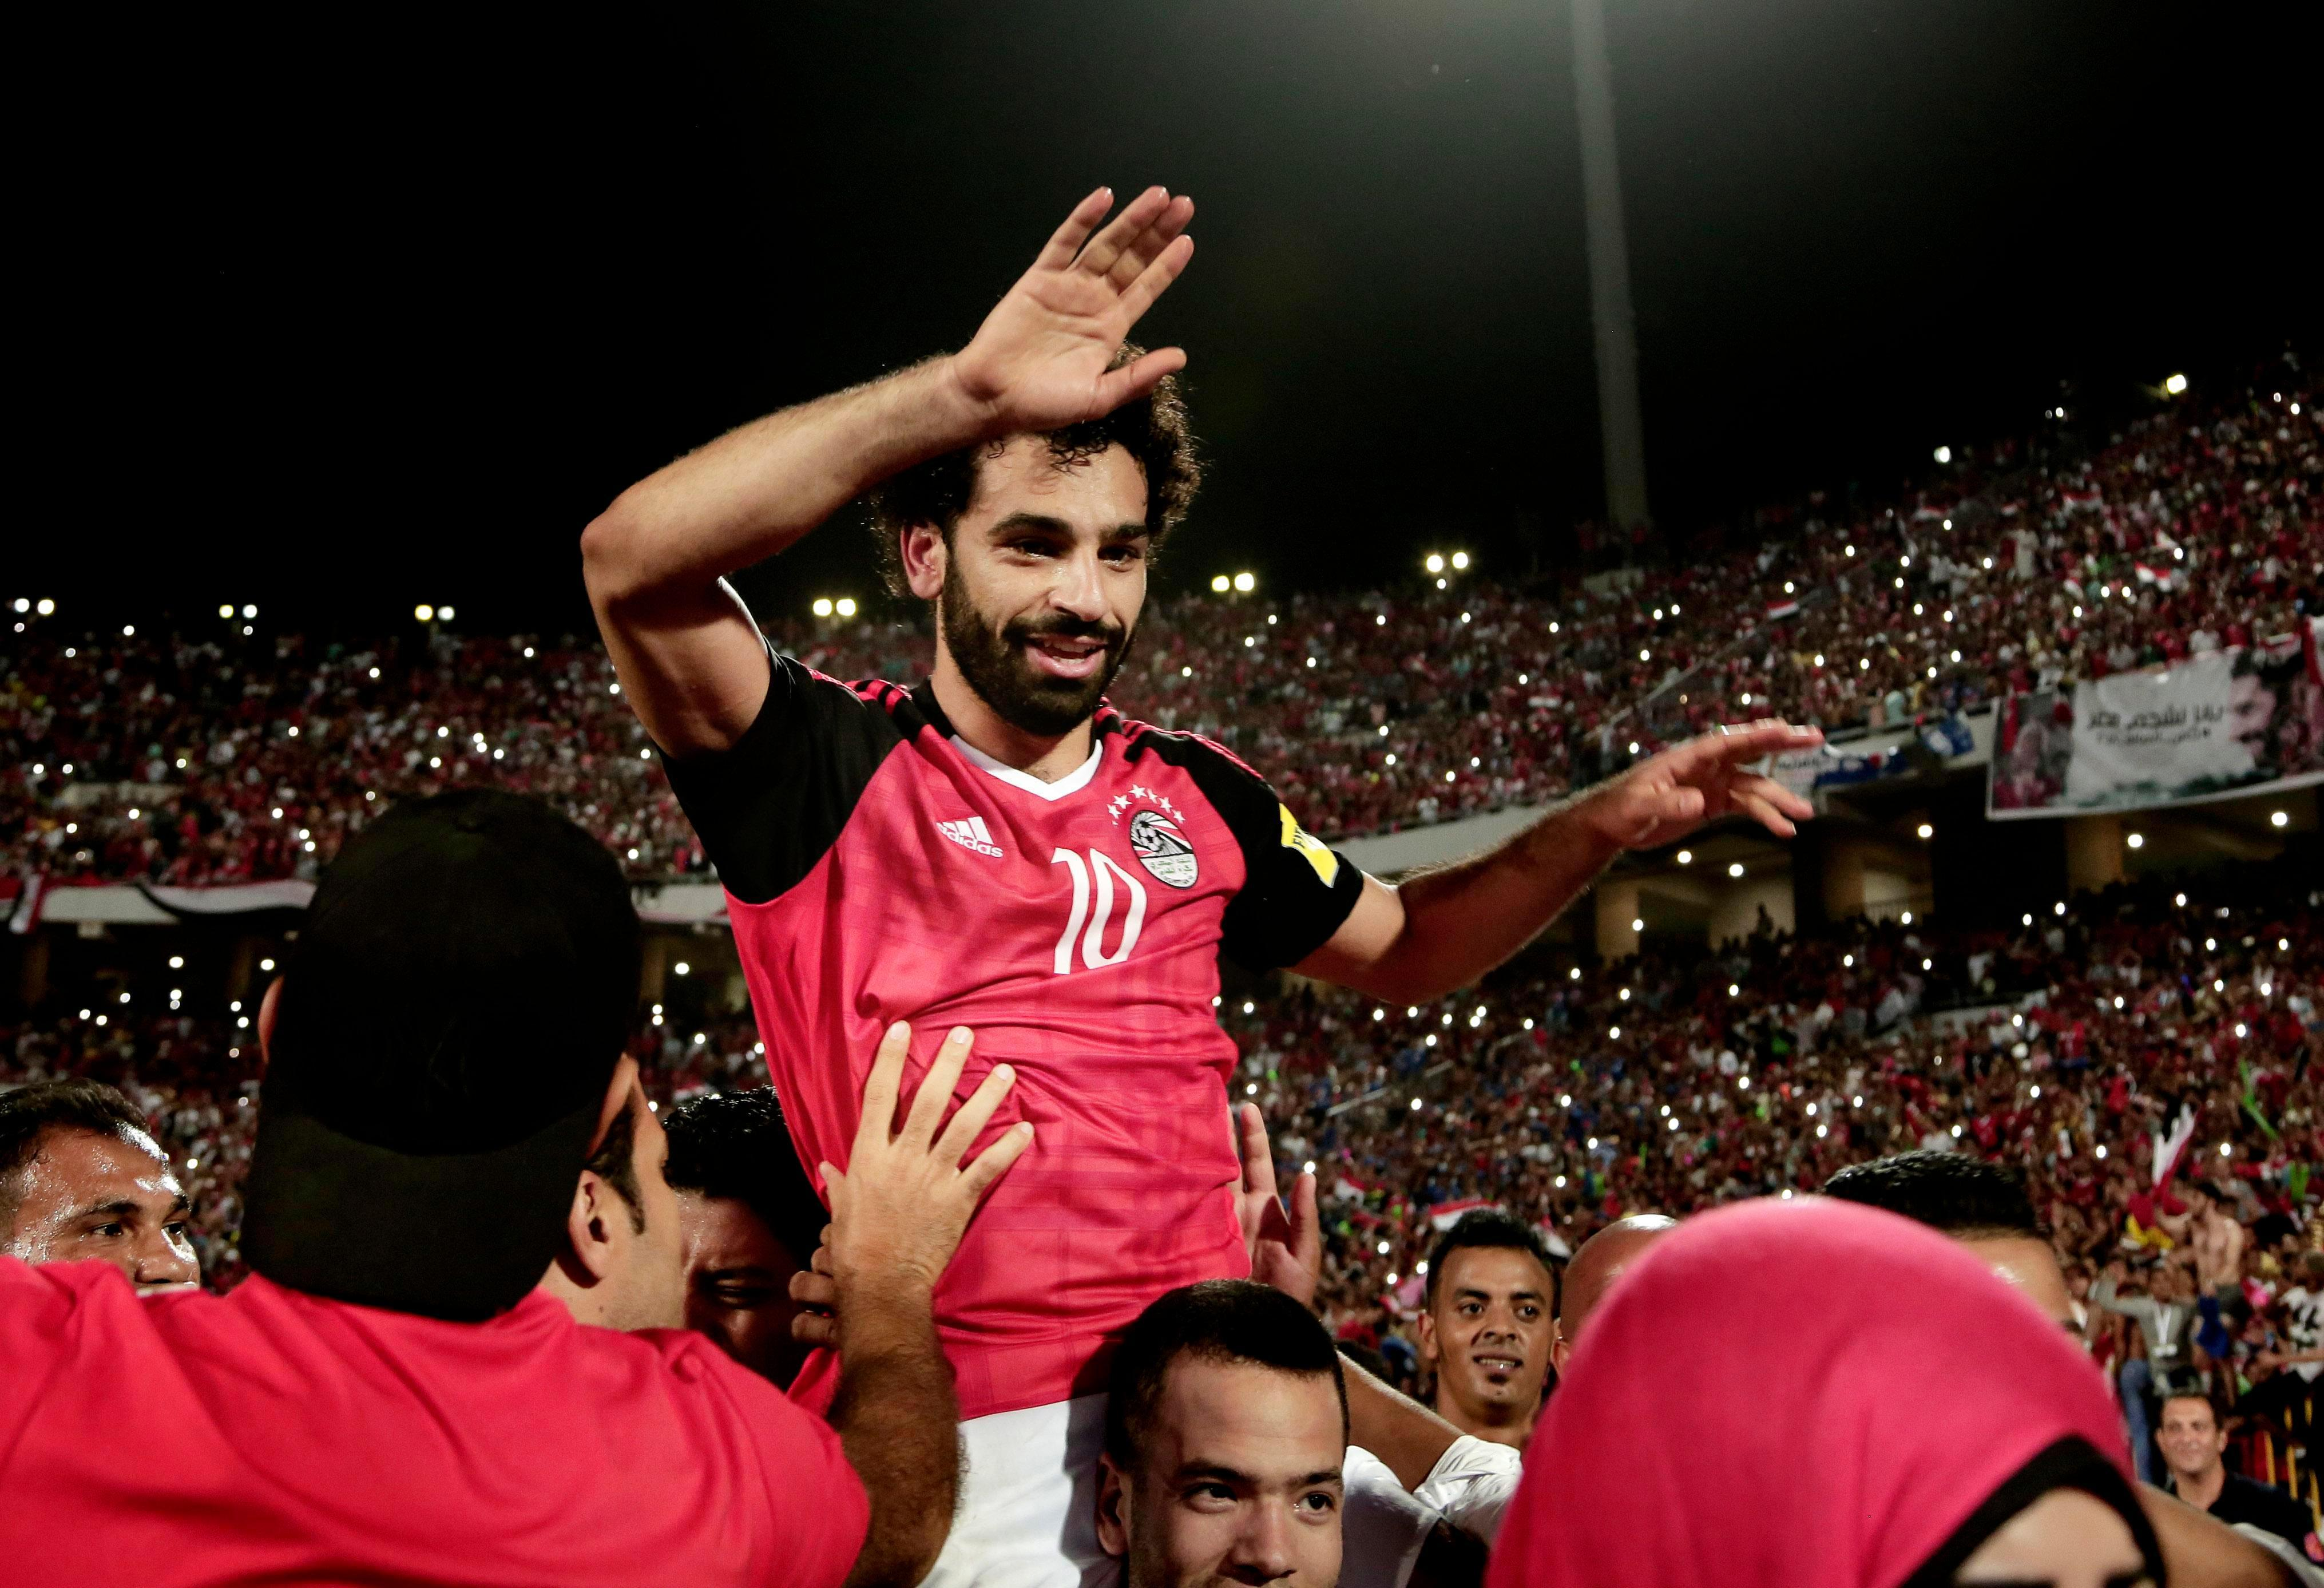 Mohamed Salah has been honoured back in his hometown